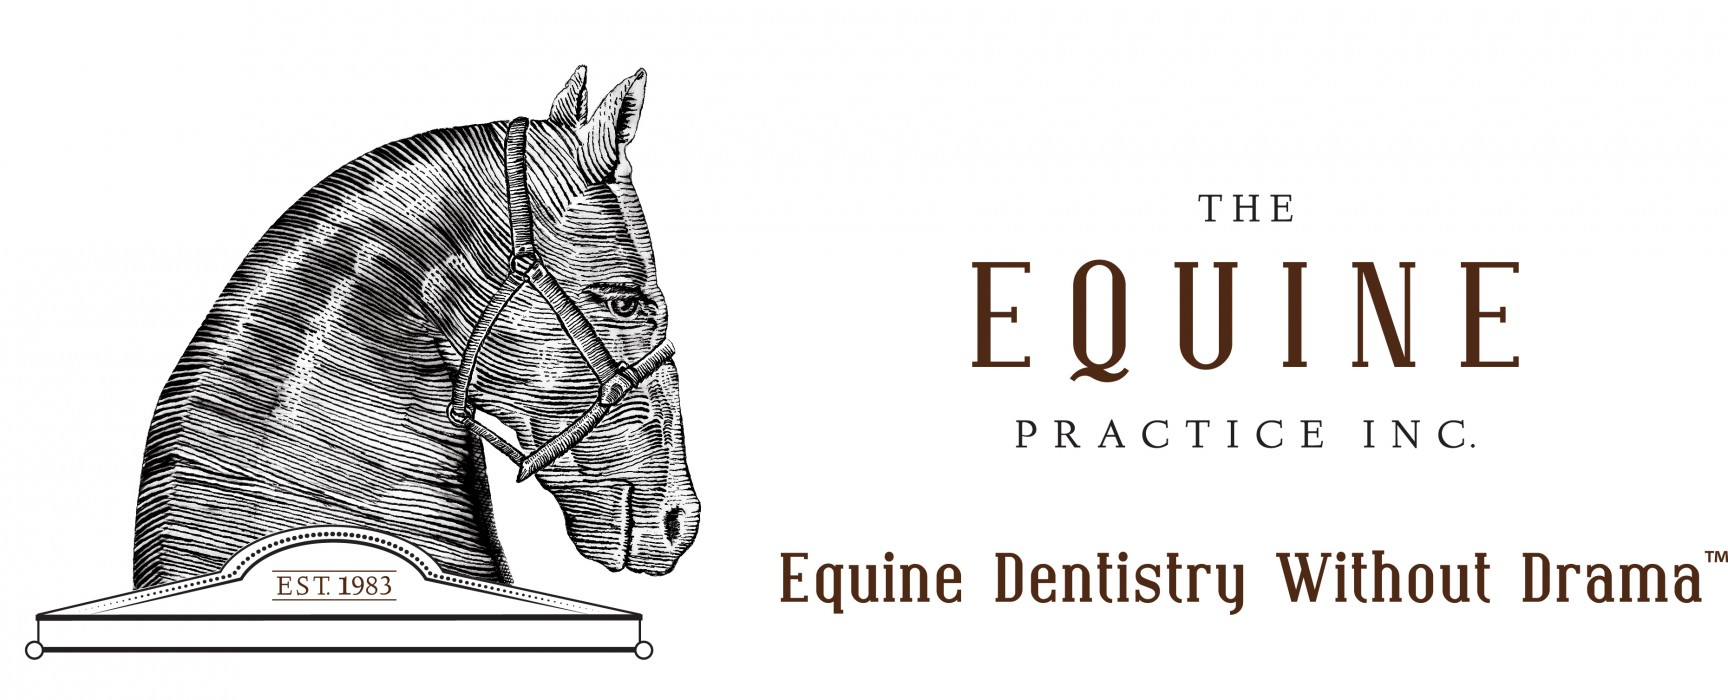 Home of Horsemanship Dentistry™, The Horsemanship Dentistry School™, The Horse's Advocate™